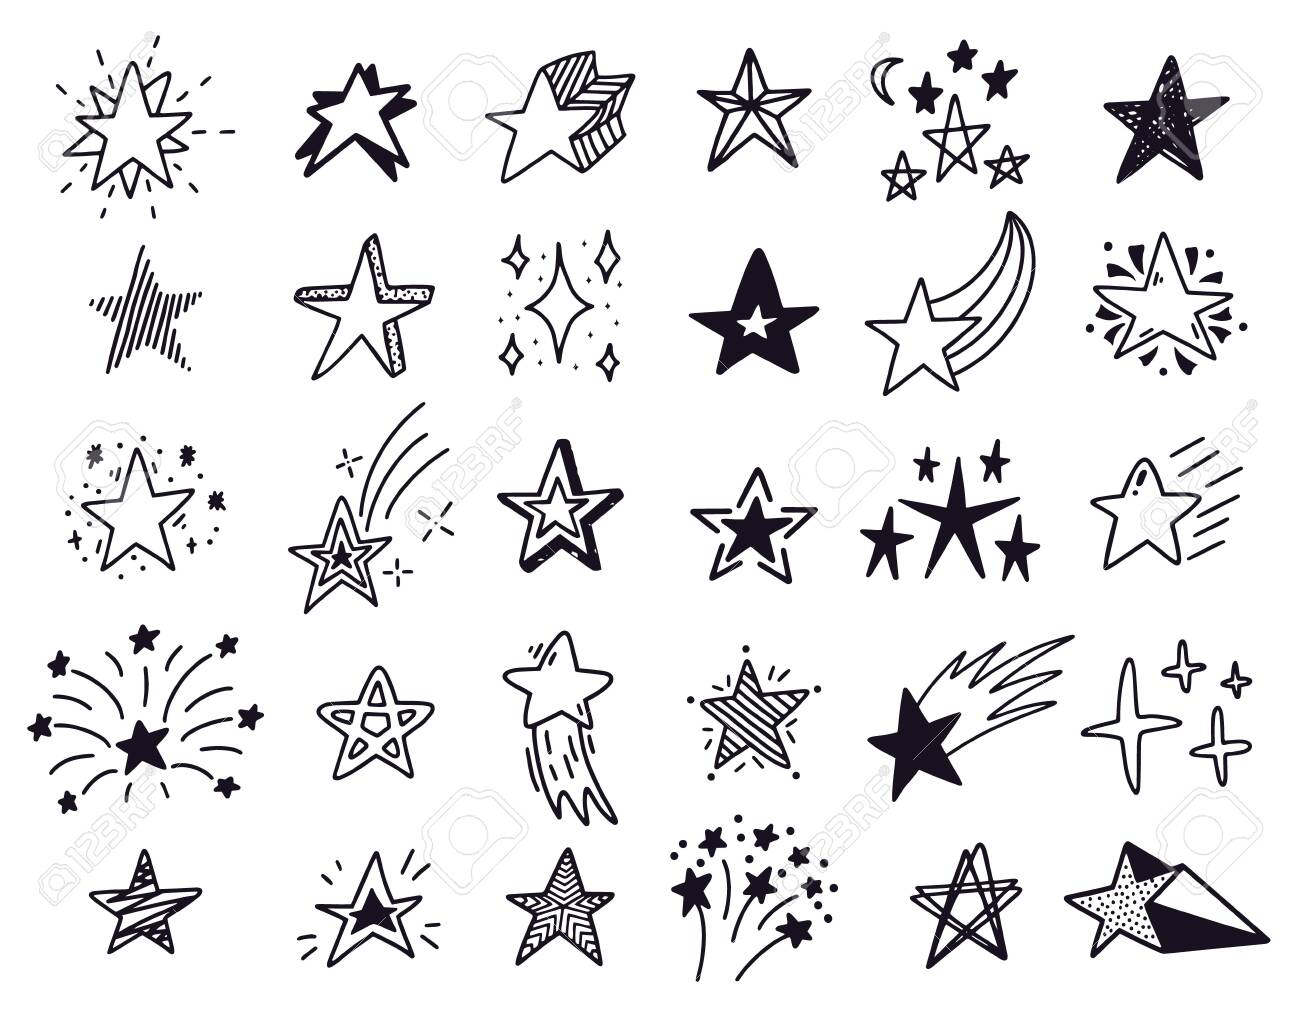 Doodle Stars Hand Drawn Sketch Stars Starry Doodles Drawing Royalty Free Cliparts Vectors And Stock Illustration Image 144945581 1 watcher586 page views2 deviations. doodle stars hand drawn sketch stars starry doodles drawing